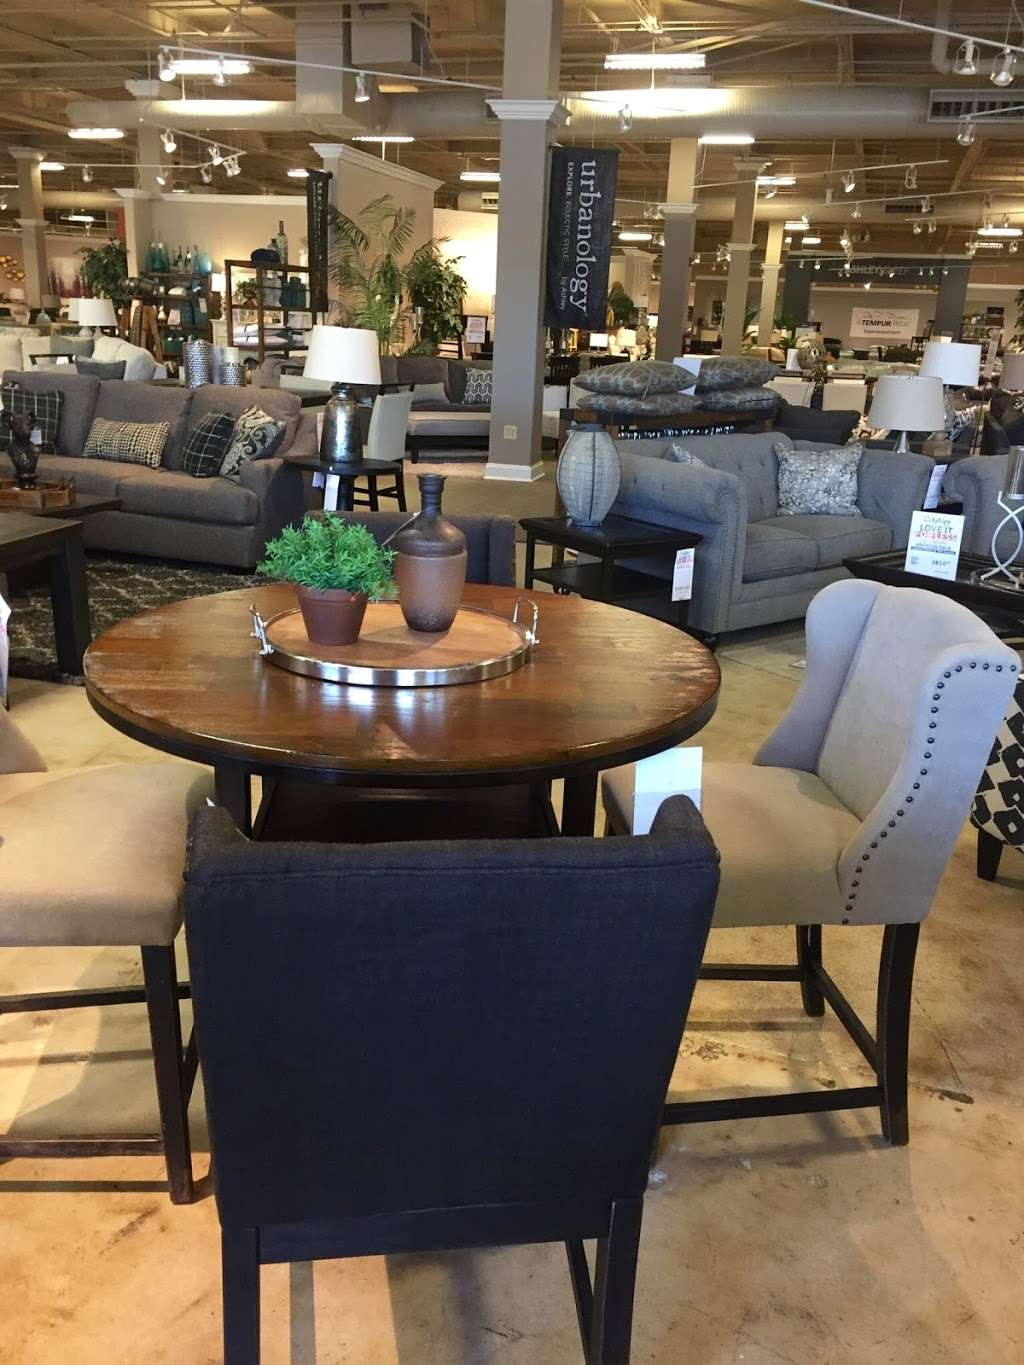 ashley homestore furniture store photo 1 of 10 address 6610 baltimore national photo by mic g show full size ashley homestore furniture